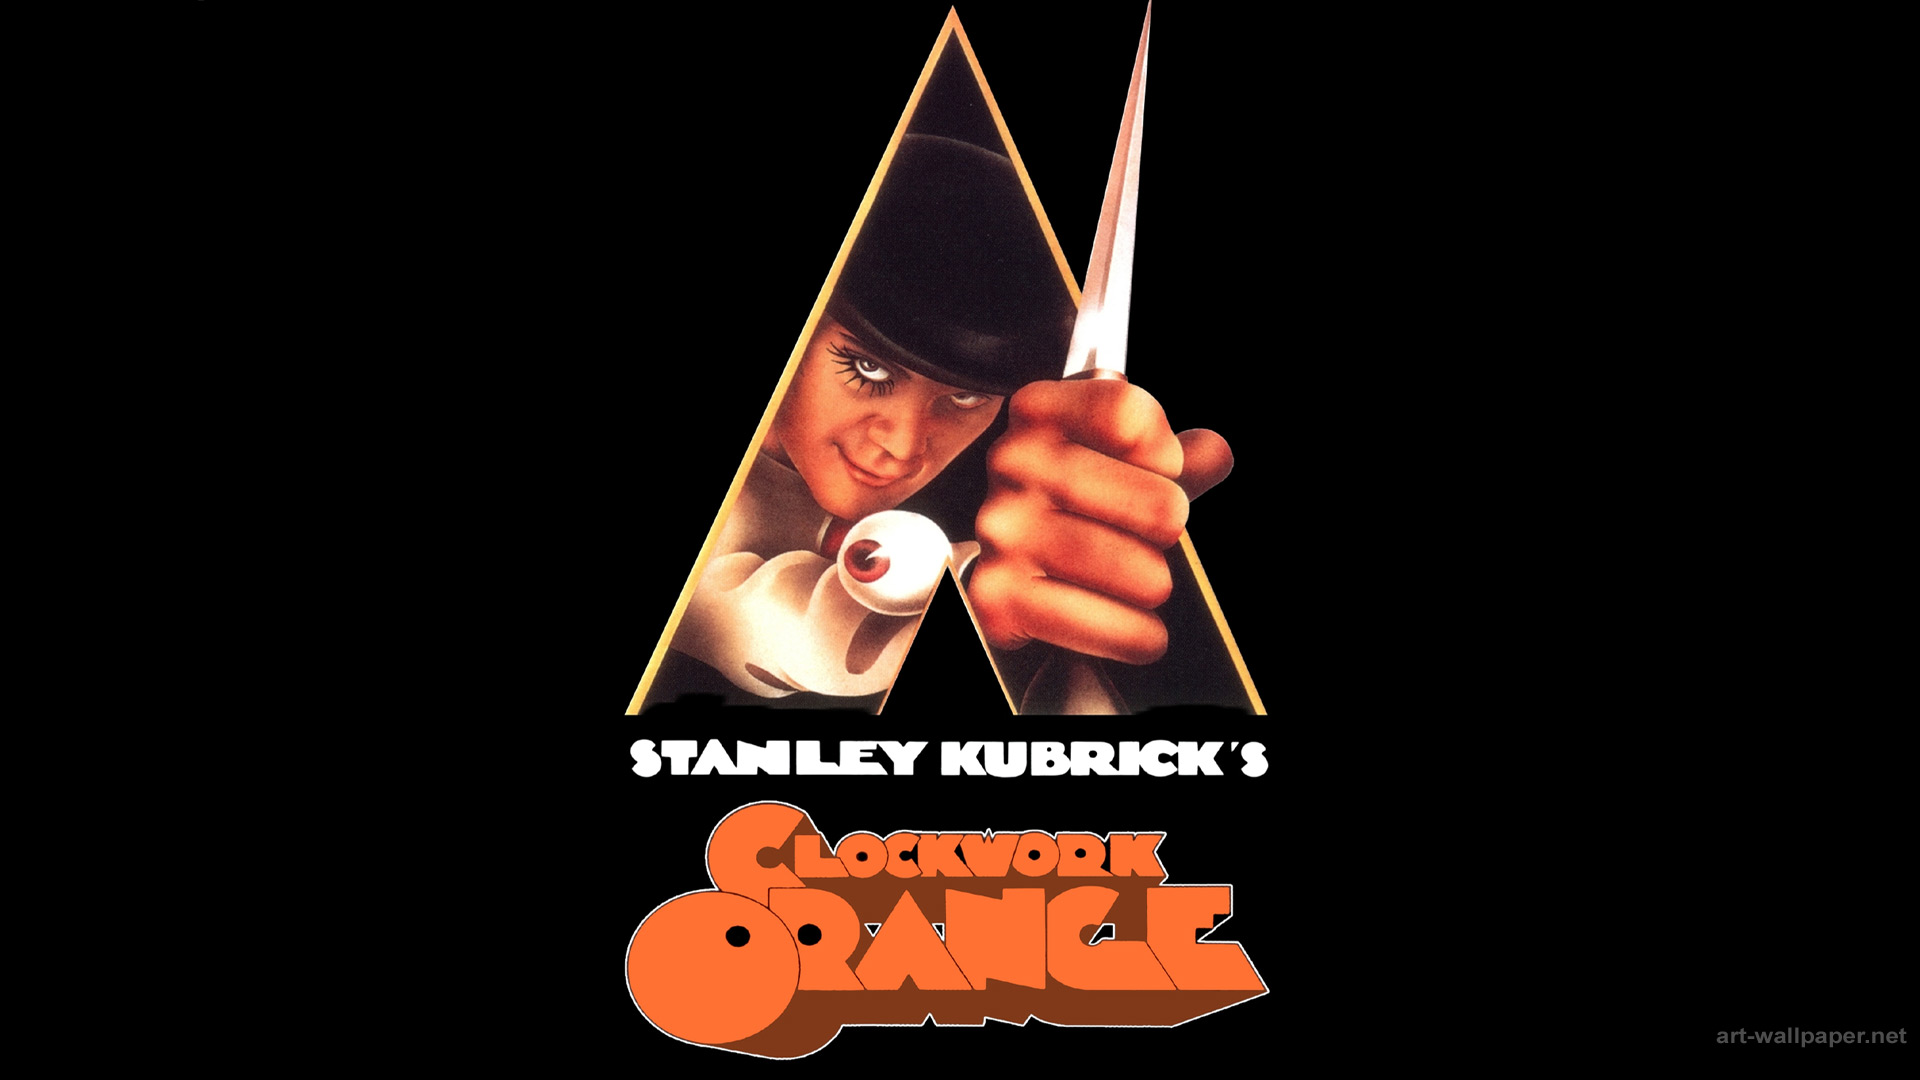 A Clockwork Orange HD Wallpaper | Background Image ... A Clockwork Orange Wallpaper 1920x1080